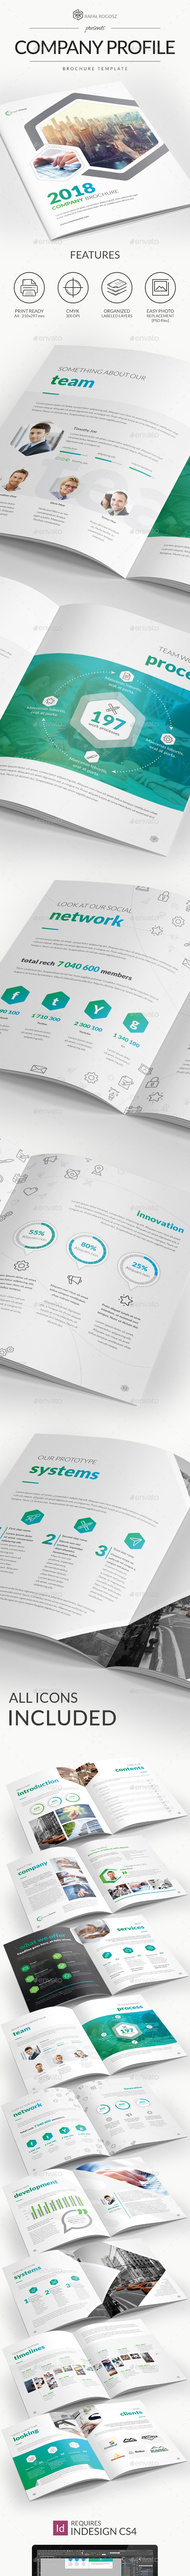 Corporate Brochure 2018 A4 - Brochures Print Templates